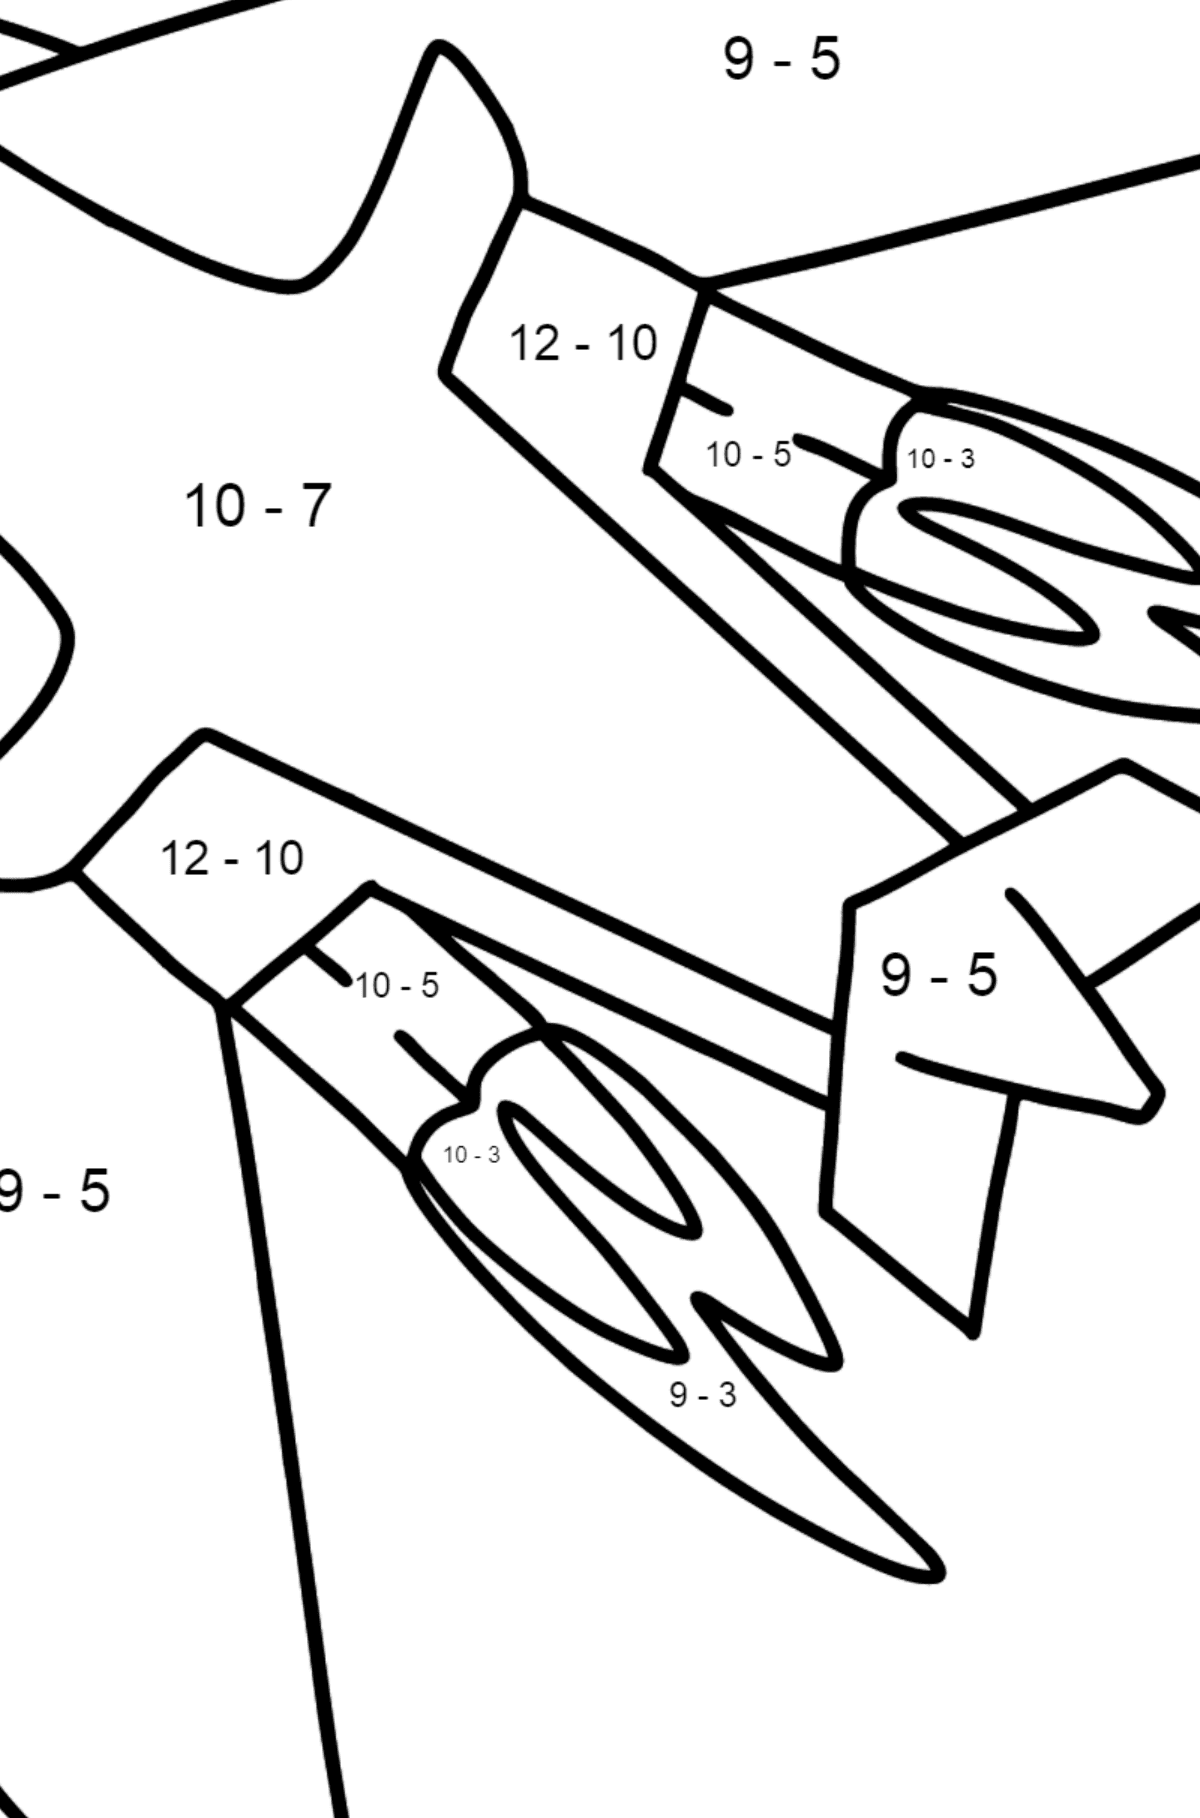 Airplane Tu-160 (White Swan) coloring page - Math Coloring - Subtraction for Kids